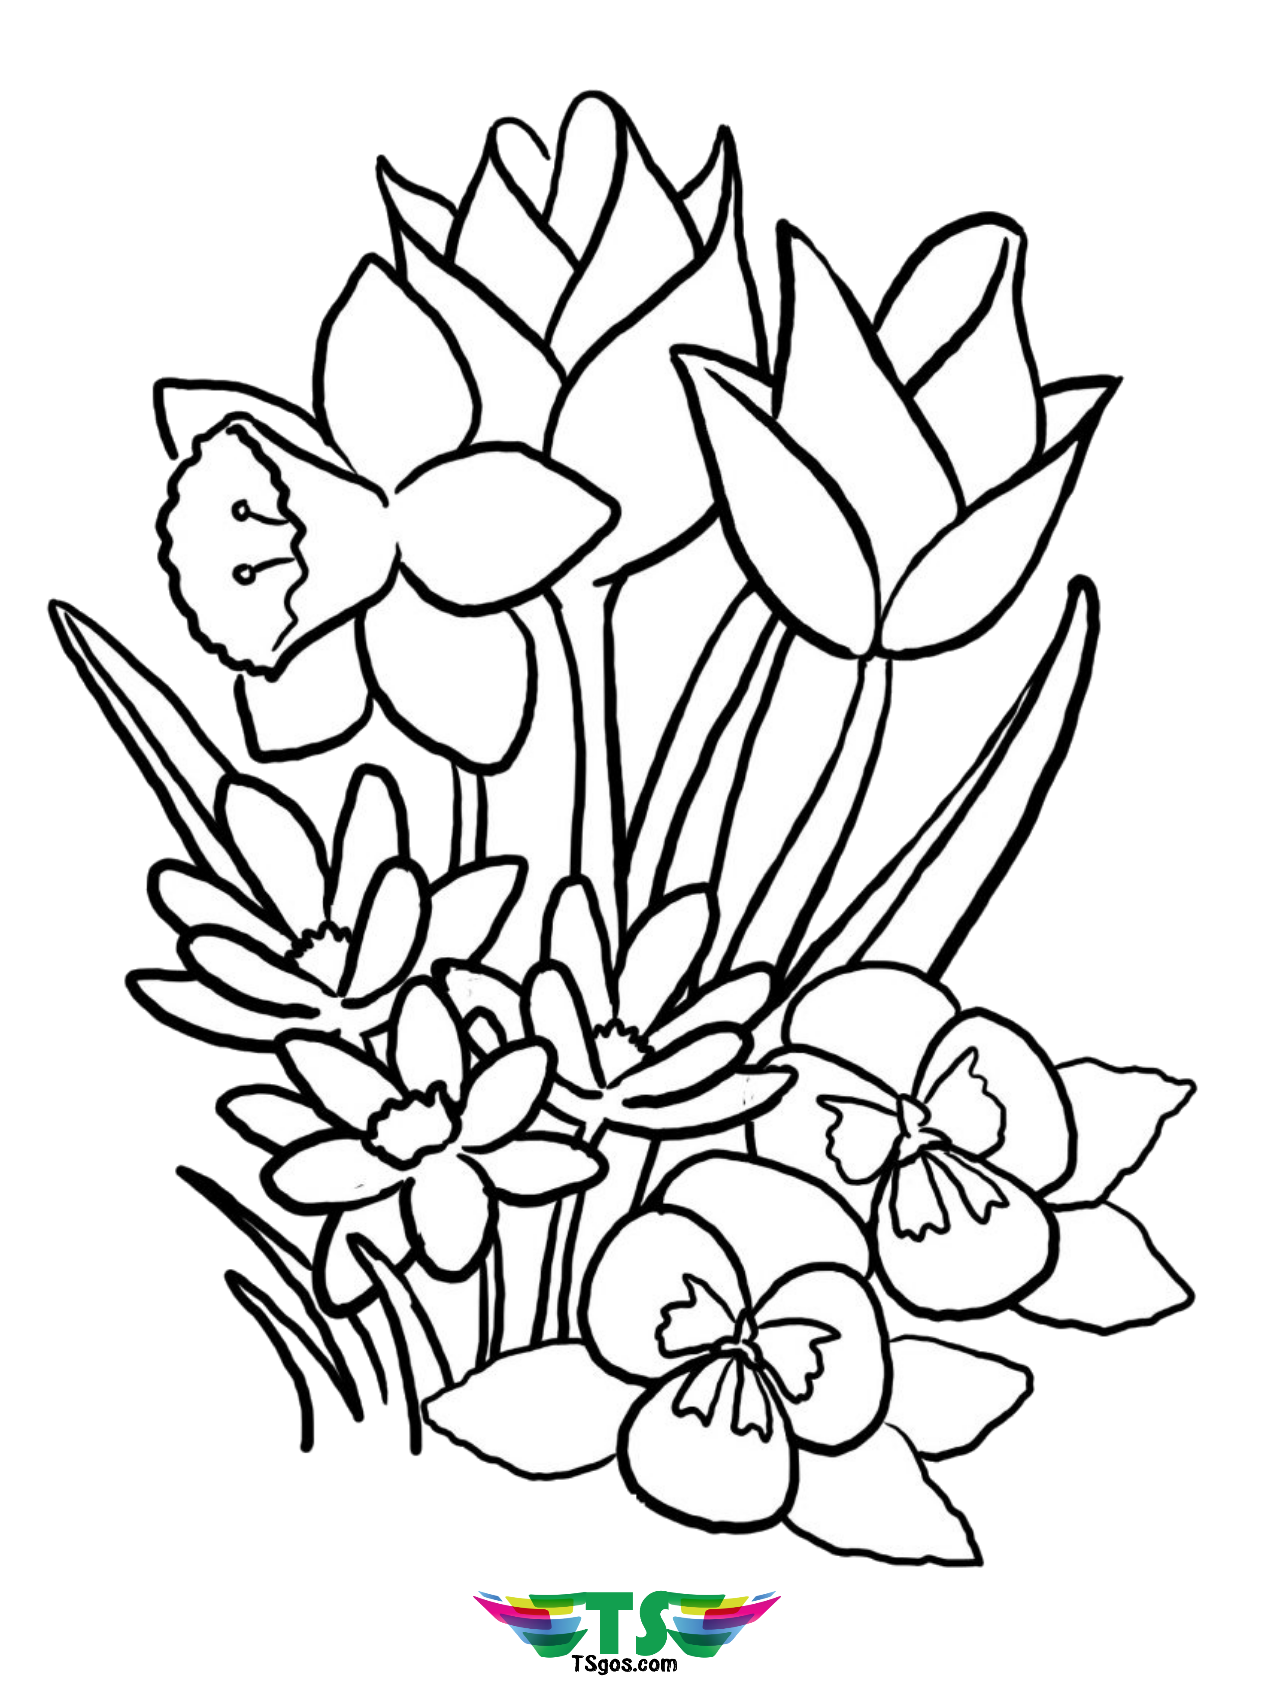 flower coloring page flower coloring pages page coloring flower